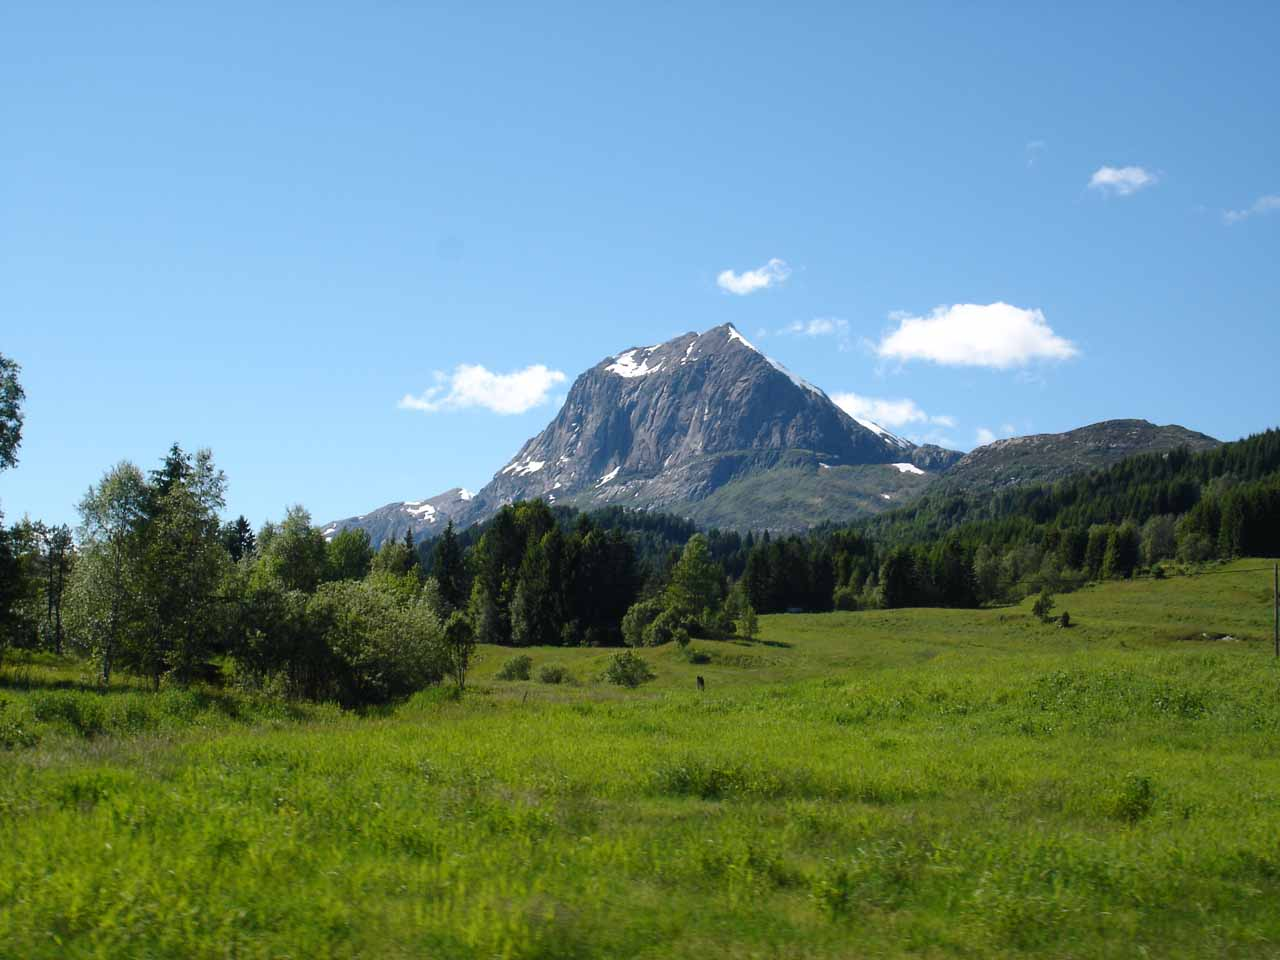 As we left the E39 and headed west on the Road 57, we noticed shapely mountains like this one